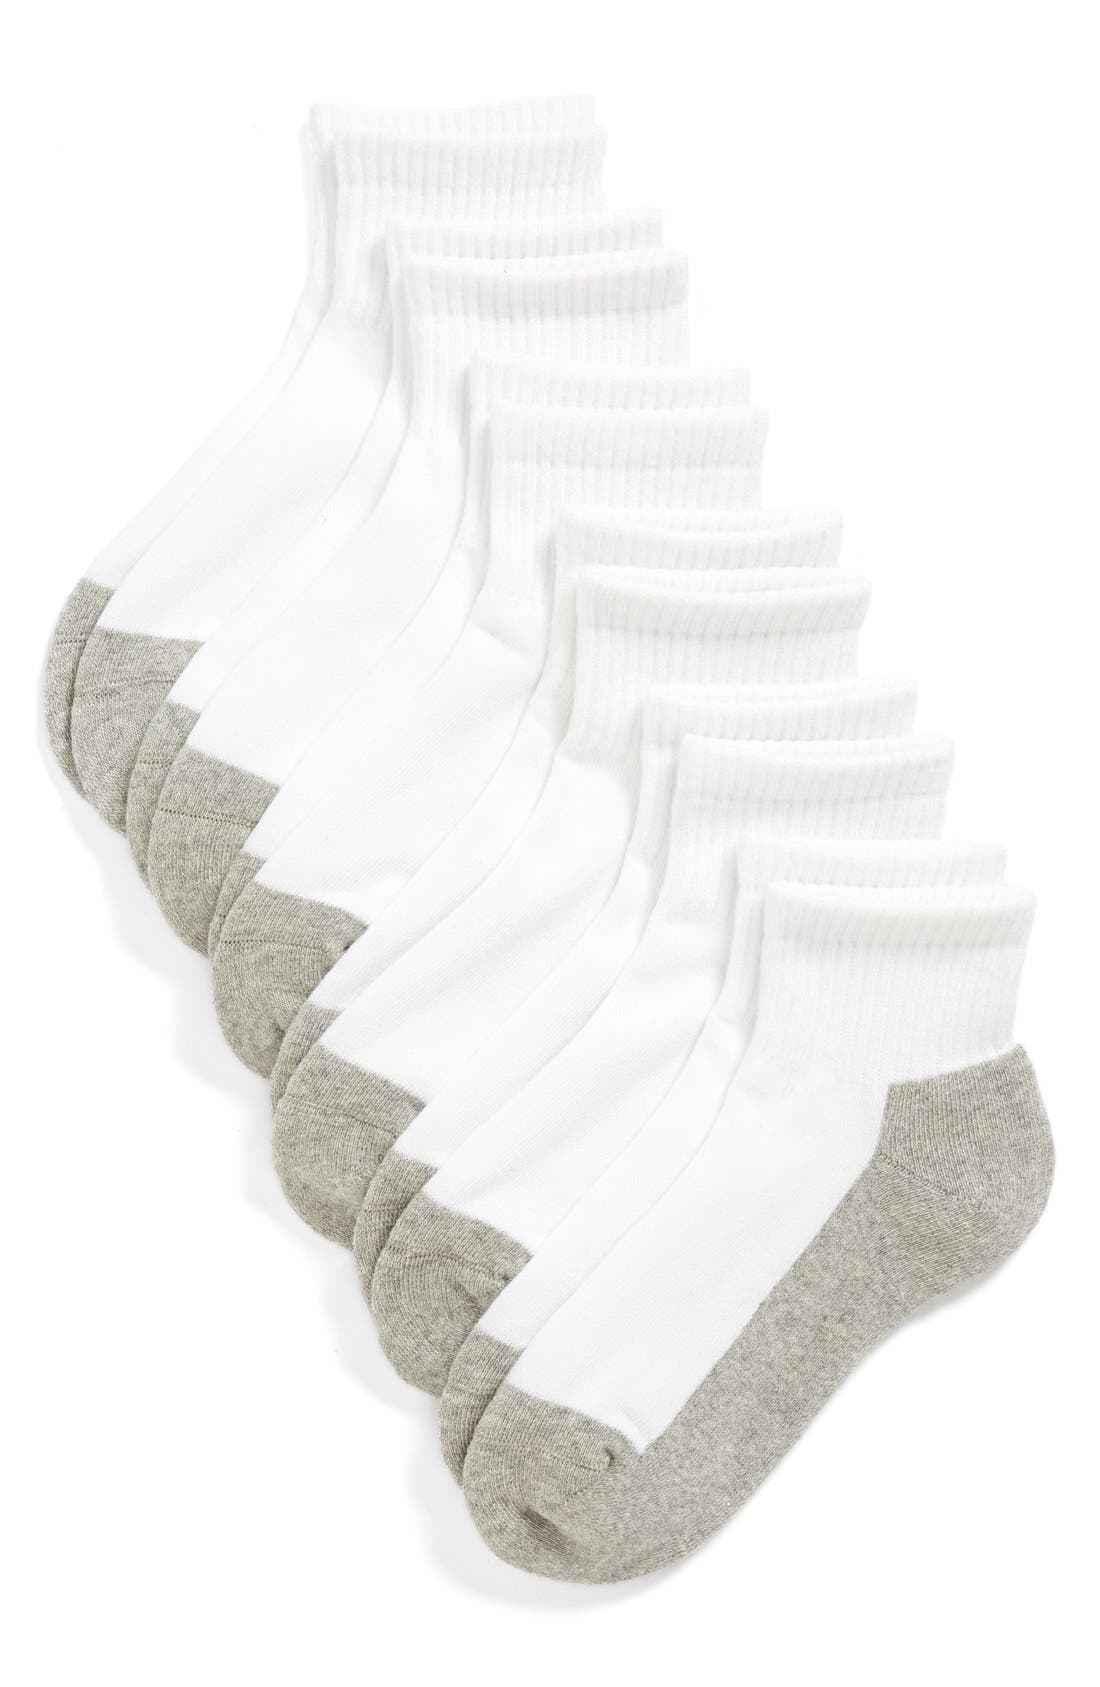 Alternate Image 1 Selected - Tucker + Tate 6-Pack Active Quarter Socks (Toddler, Little Kid & Big Kid)